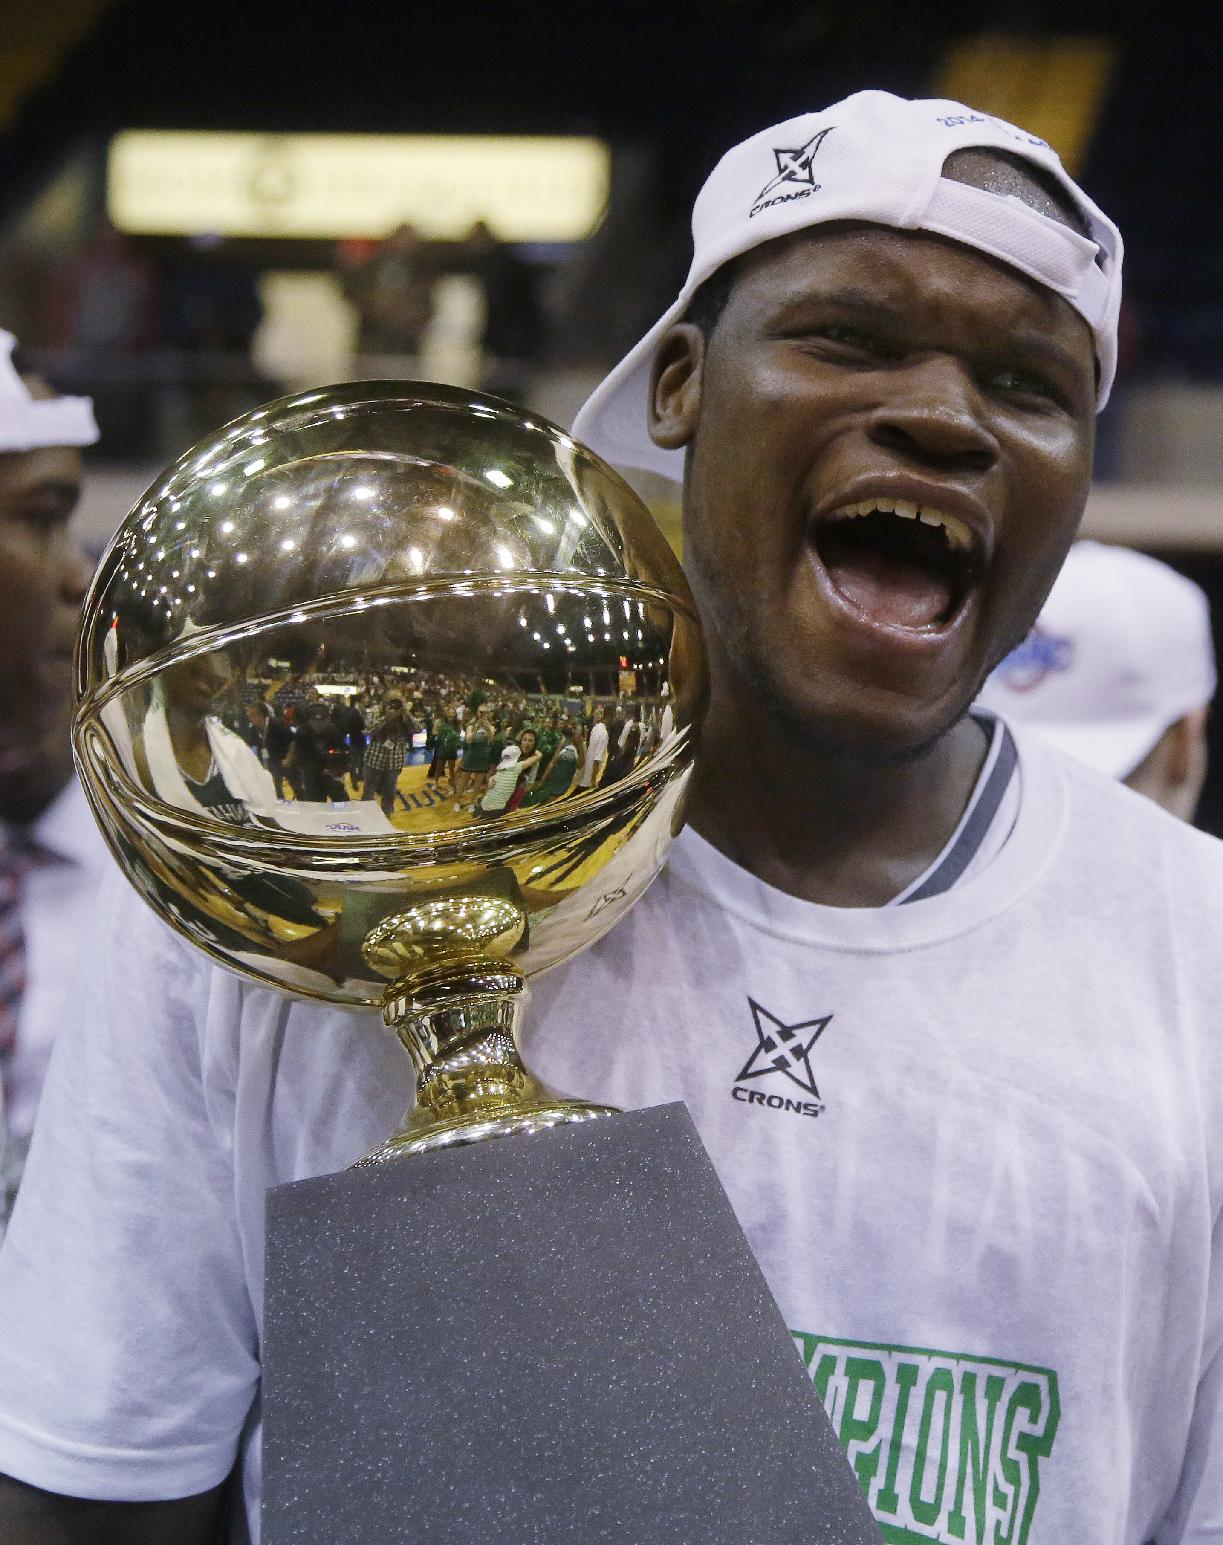 Manhattan forward Rhamel Brown (5) celebrates with the trophy after their NCAA men's MAAC conference championship tournament basketball finals game win over Iona in Springfield, Mass., Monday, March 10, 2014. Manhattan defeated Iona 71-68